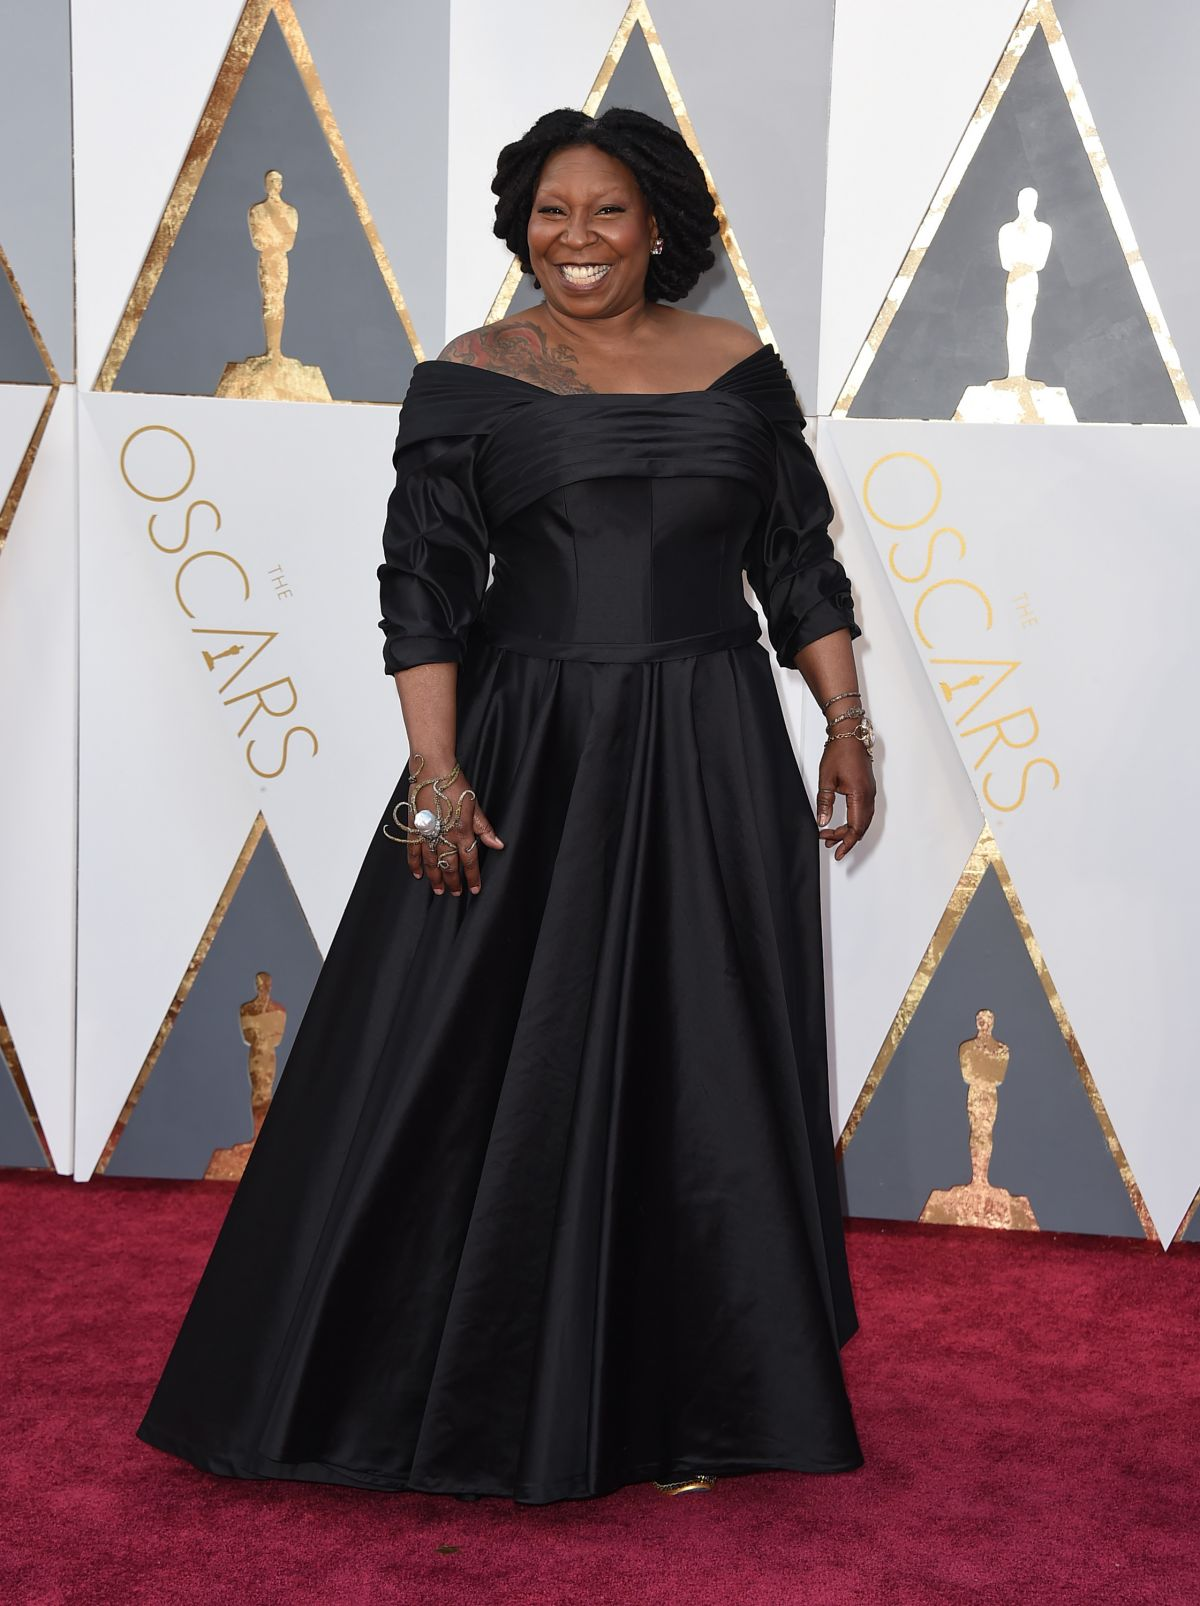 WHOOPI GOLDBERG at 88th Annual Academy Awards in Hollywood 02/28/2016